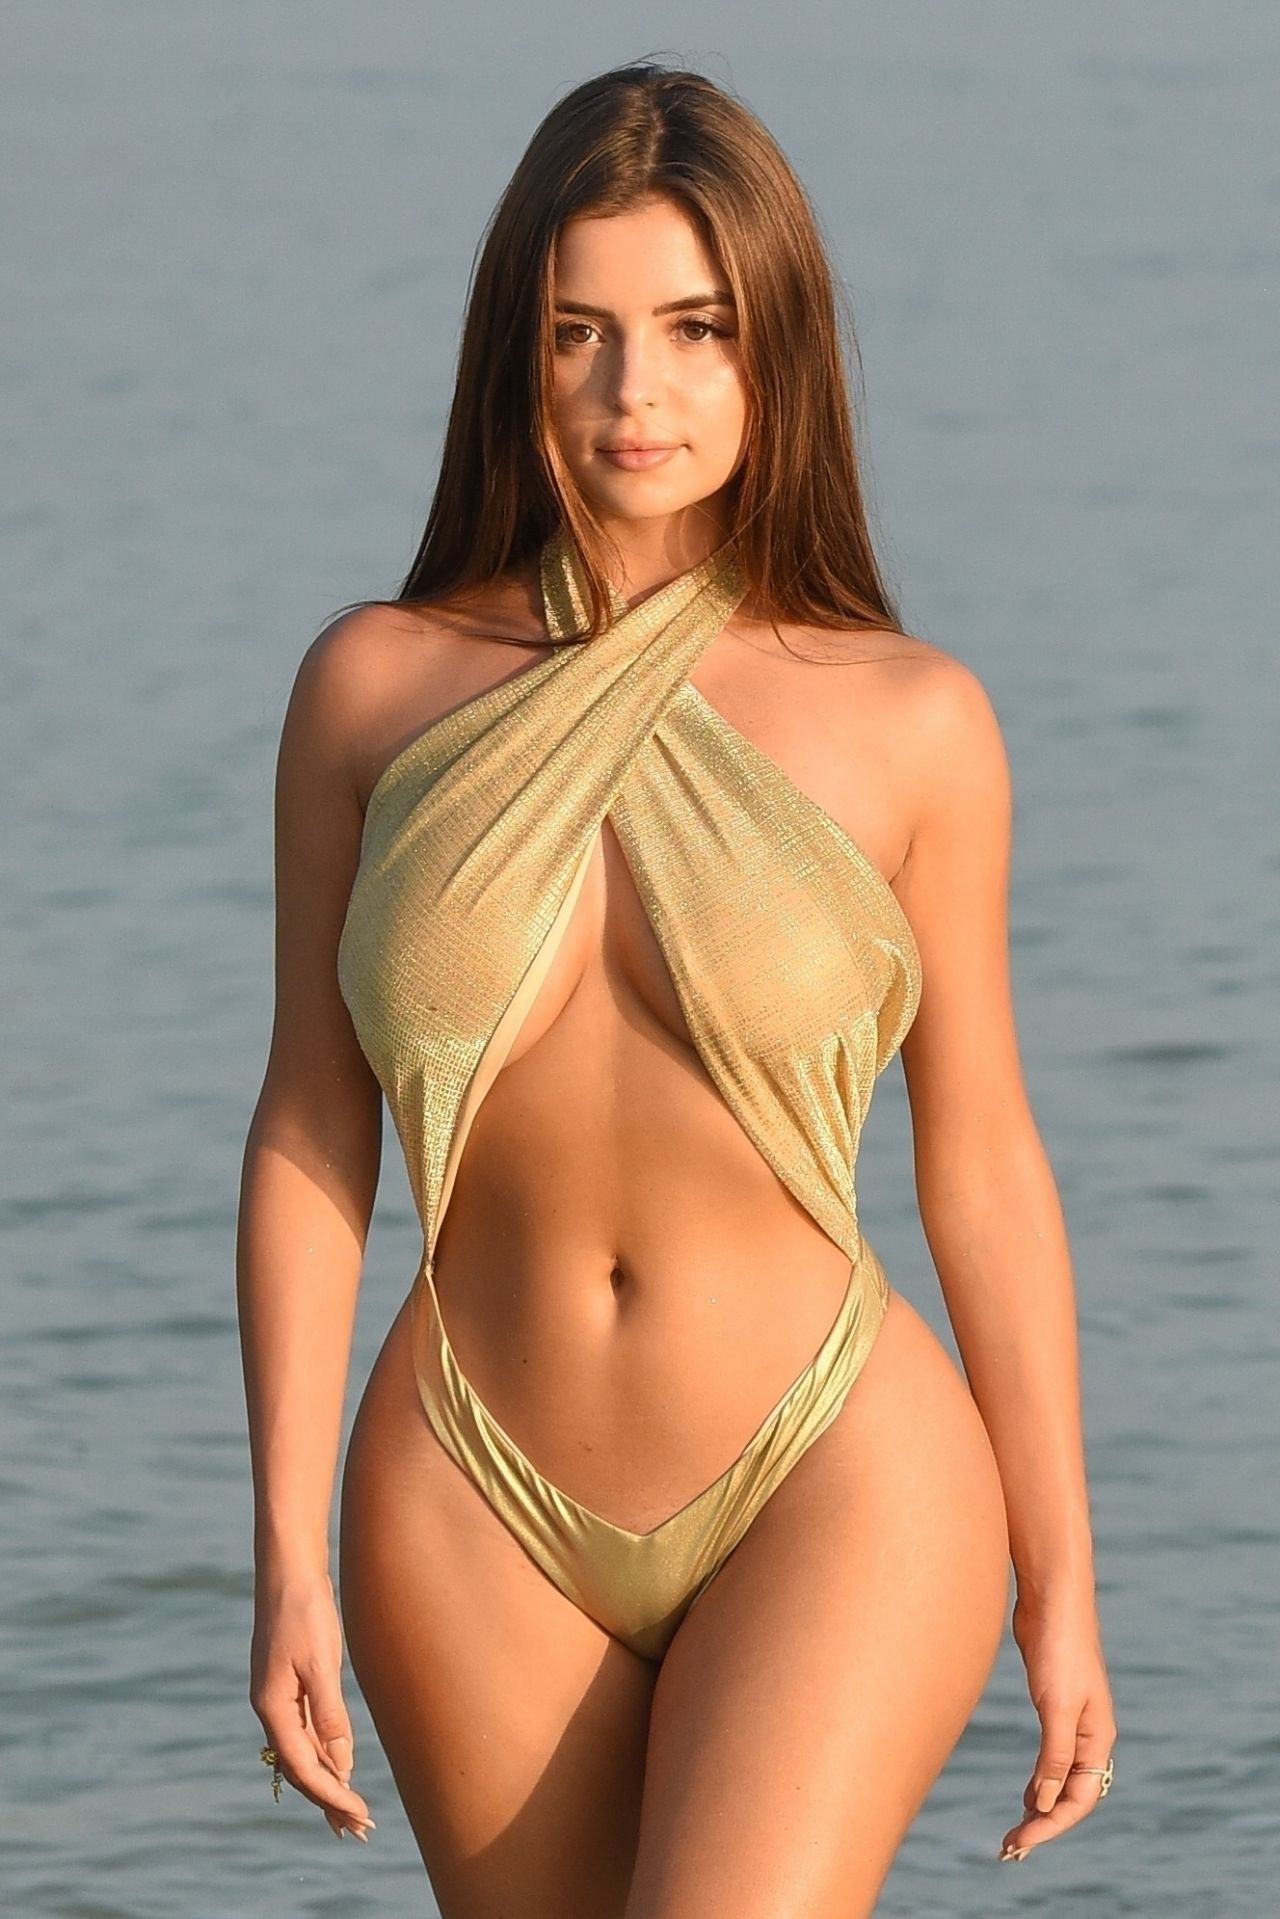 Demi Rose In A Gold Swimsuit, February 2019-6862